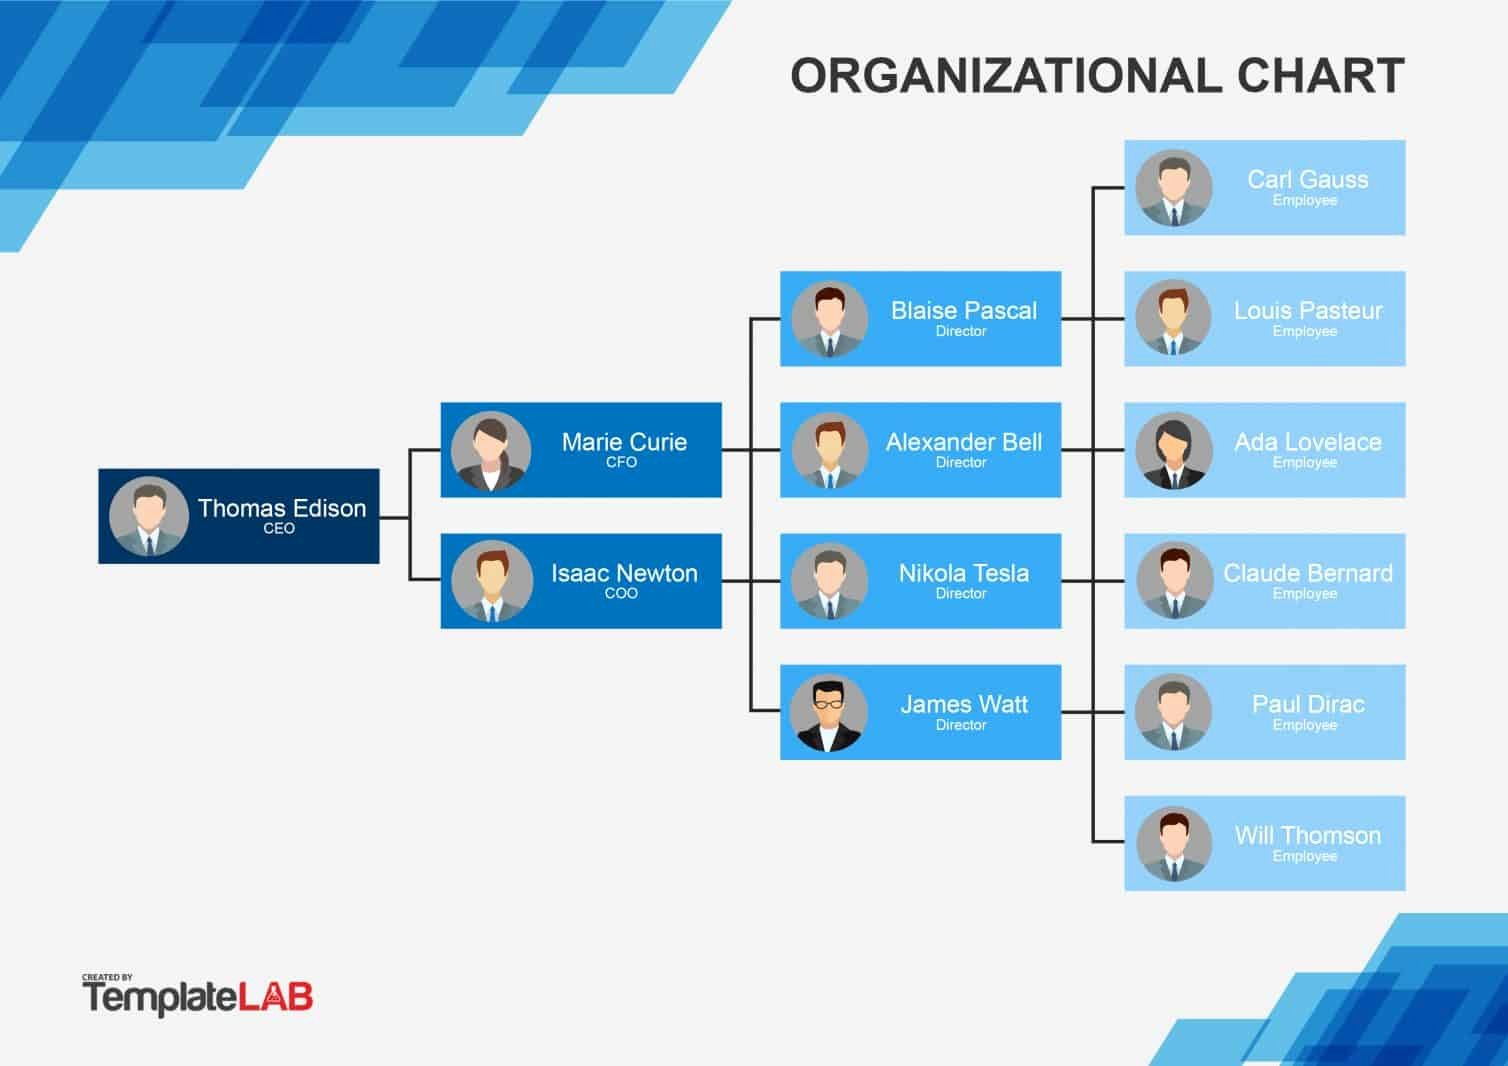 Organization Chart Template Excel Best Of 40 organizational Chart Templates Word Excel Powerpoint